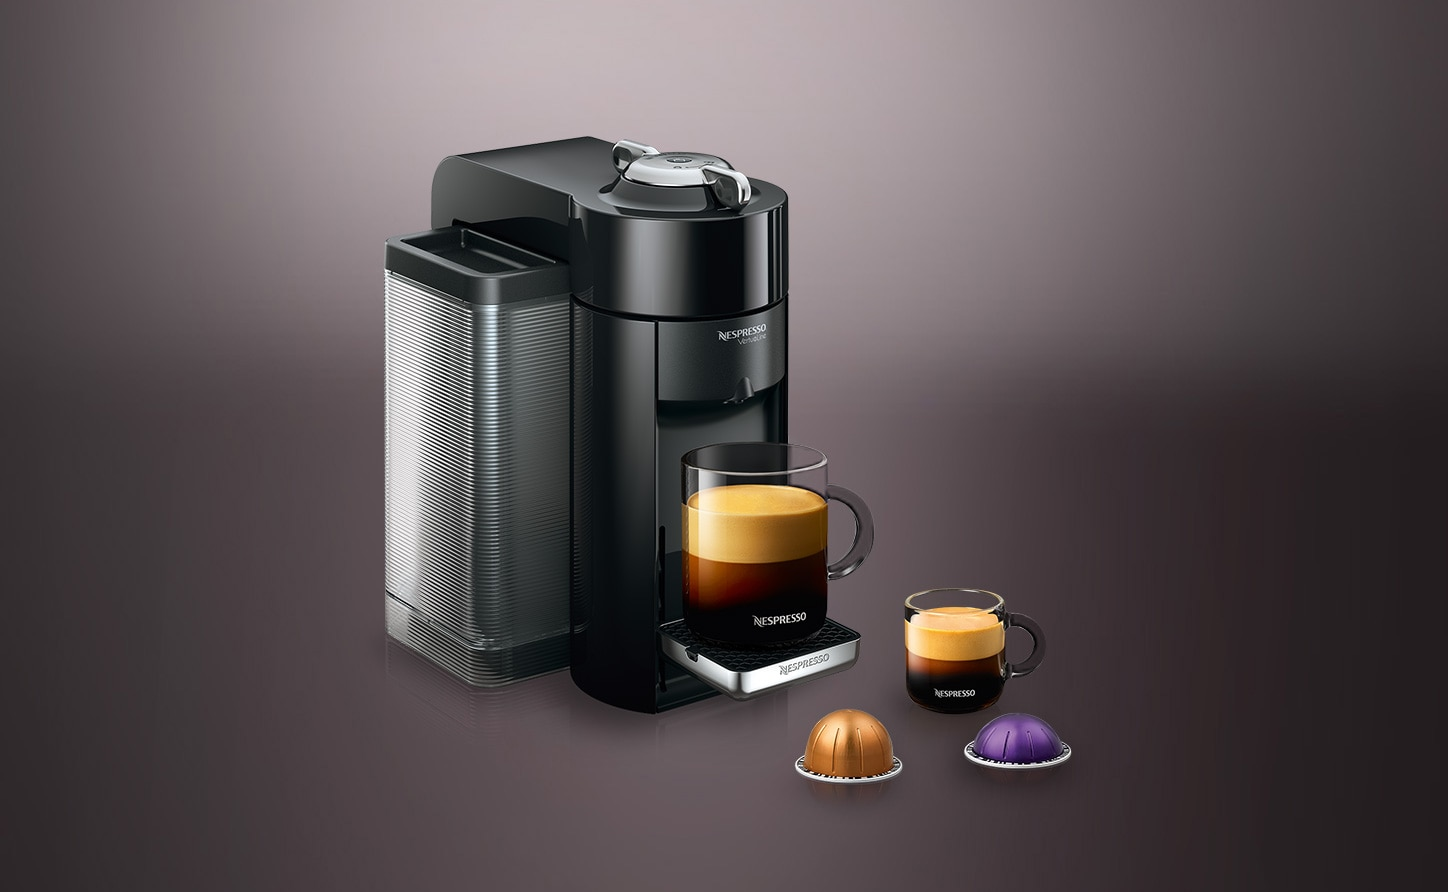 De'Longhi's Automatic Cappuccino System combined with Nespresso premium espresso capsules creates a simple, one touch method for making authentic espresso beverages in your own home.